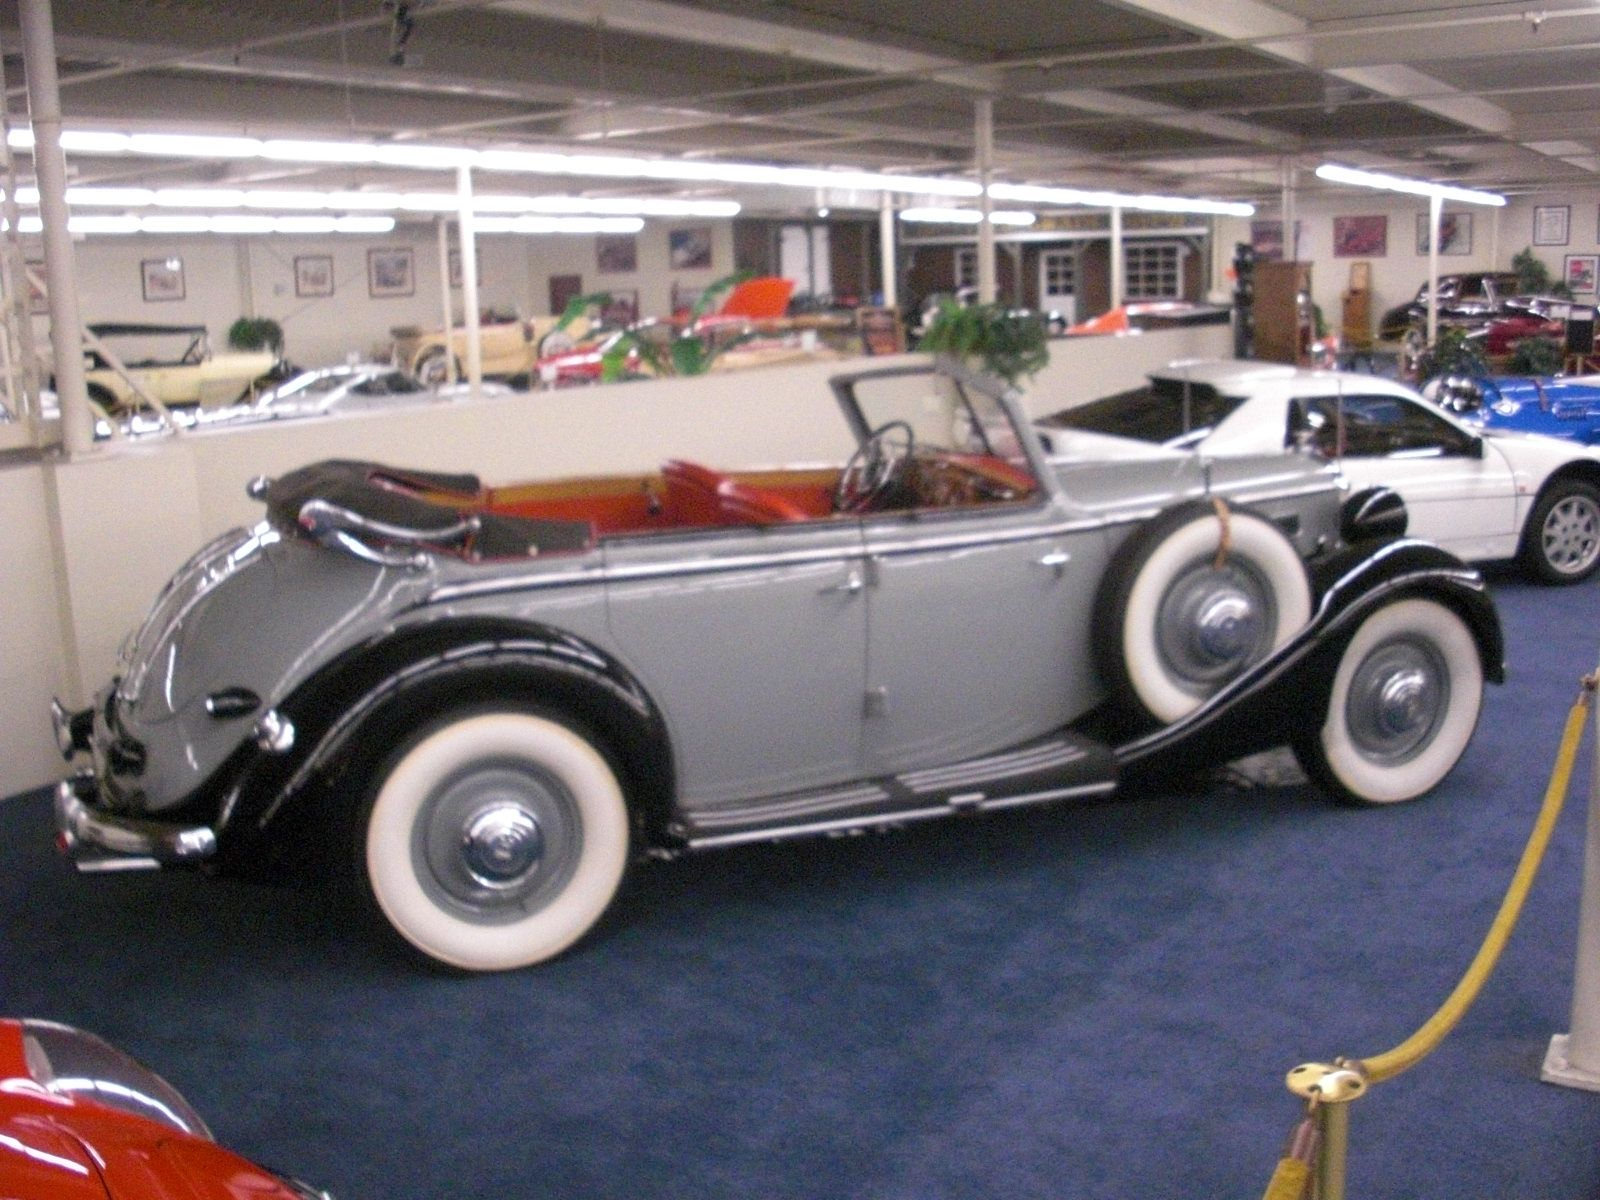 Horch 930 V | Horch, DKW & Wanderer Cars | Pinterest | Car brands ...